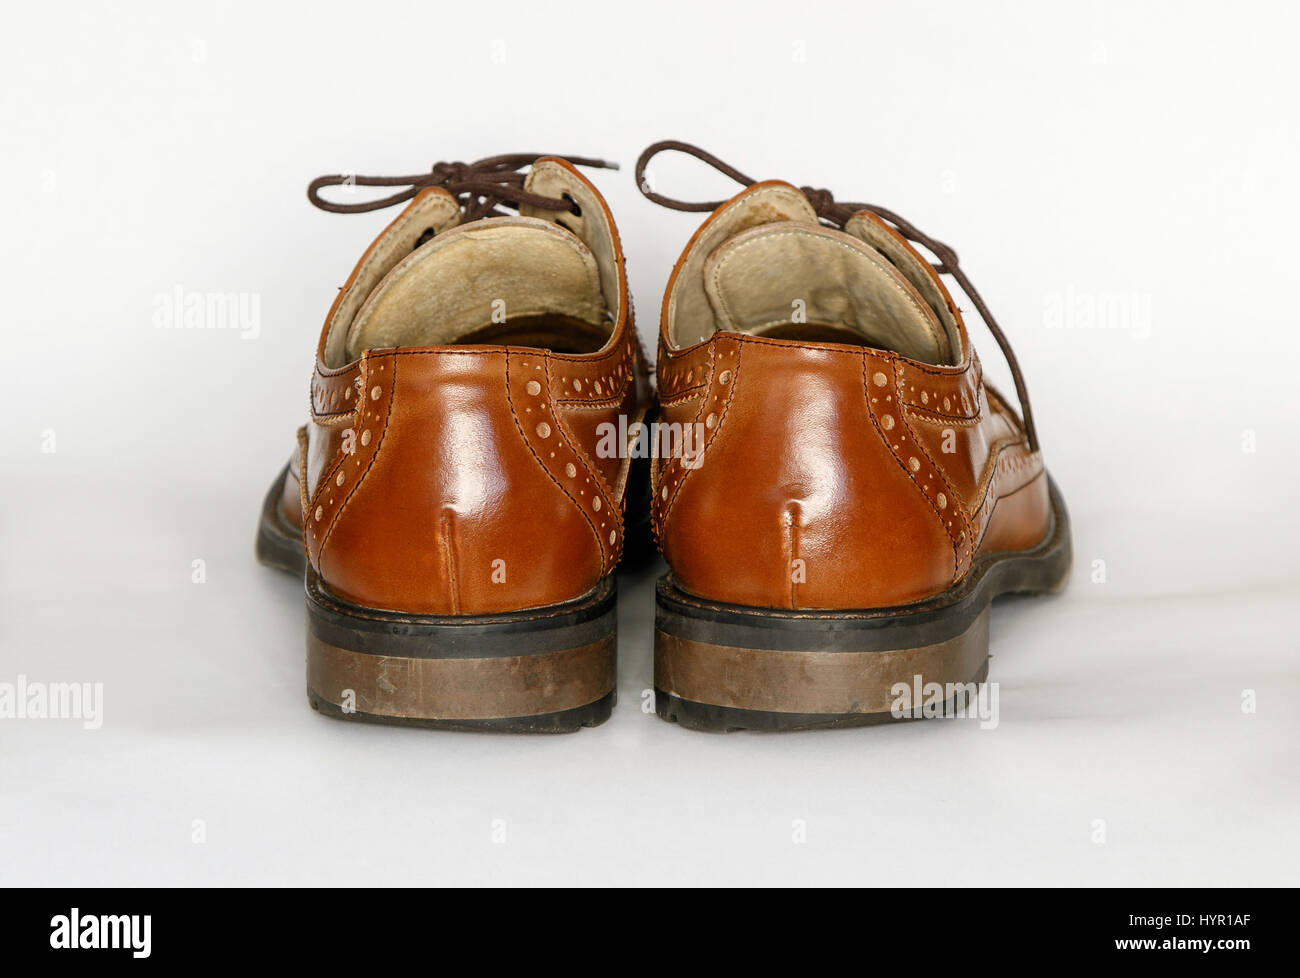 5c172158 Brown Dress Shoes Stock Photos & Brown Dress Shoes Stock Images - Alamy